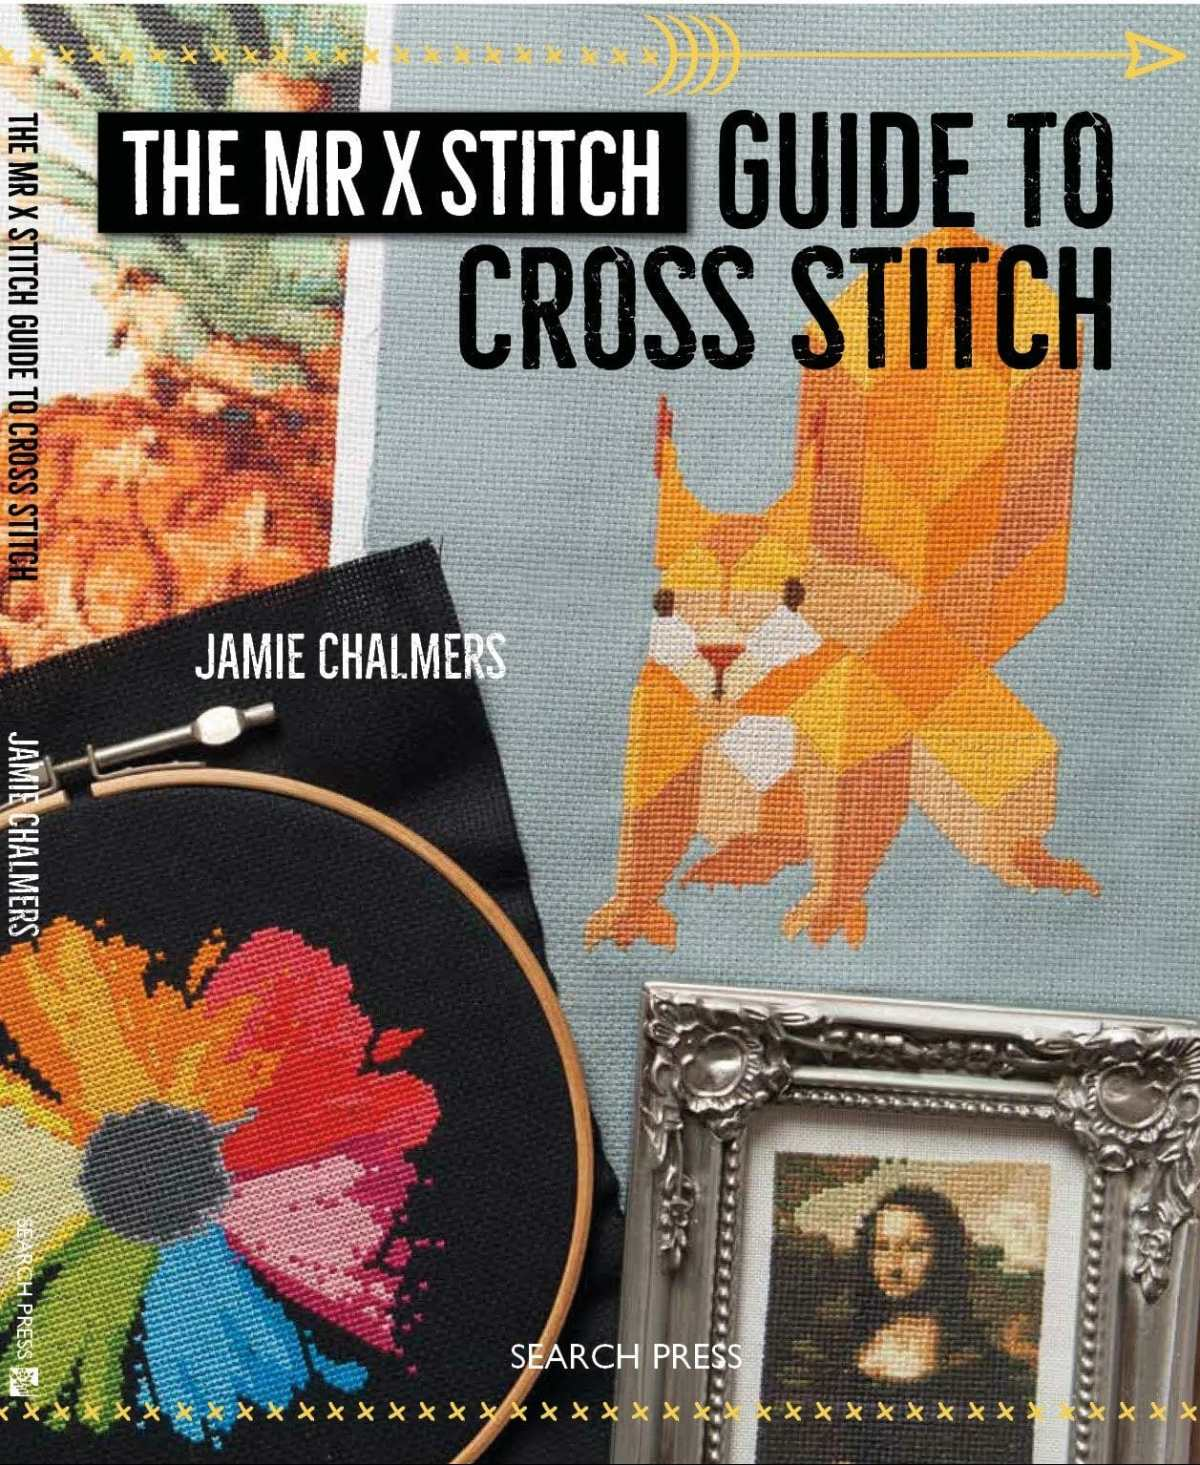 The Mr X Stitch Guide to Cross Stitch is coming!